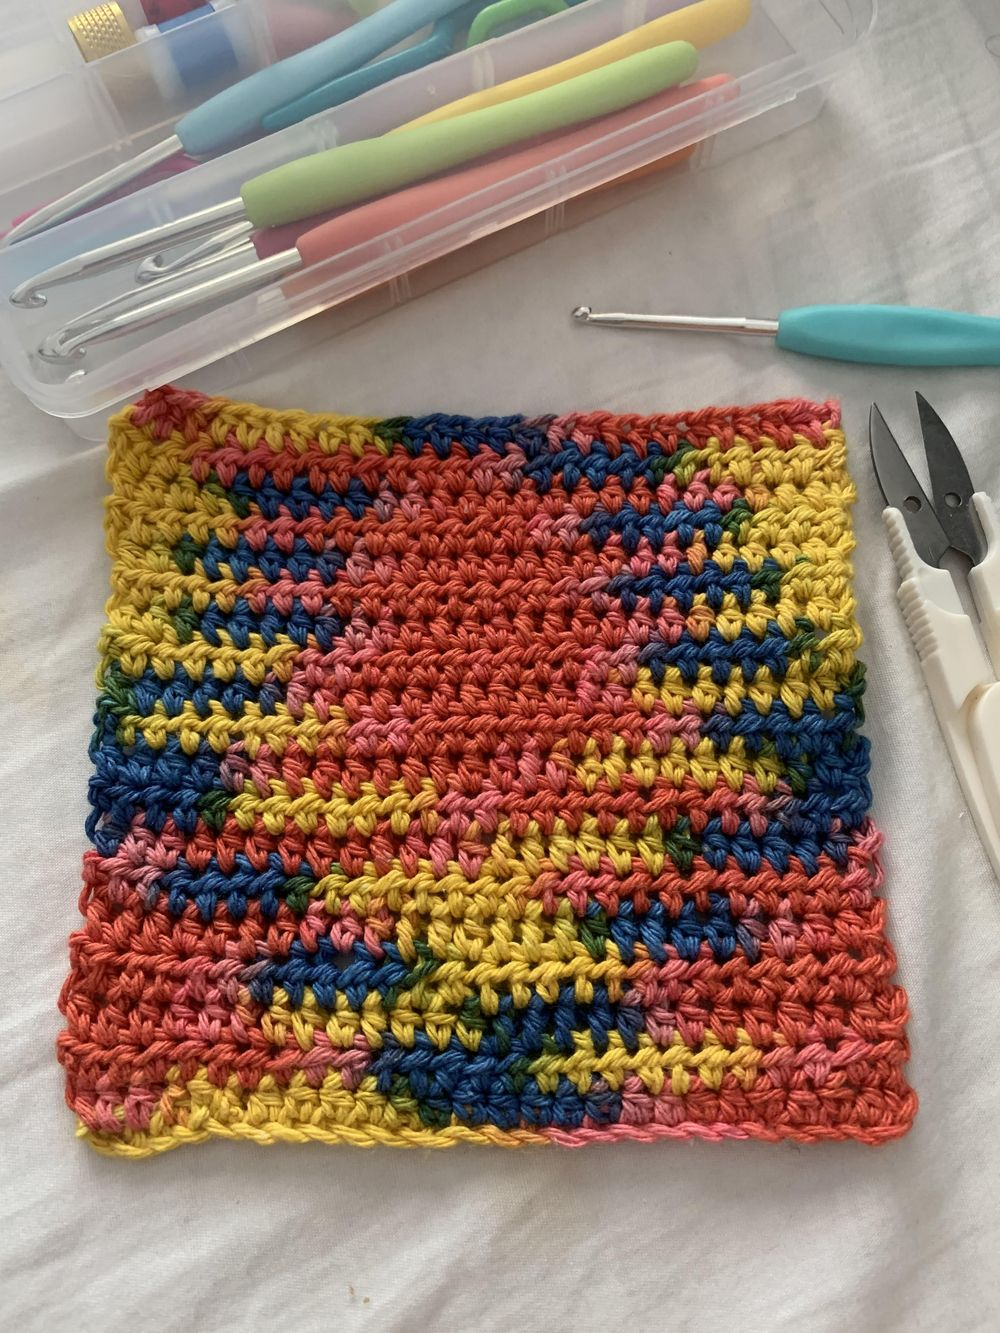 3 washcloths - image 3 - student project